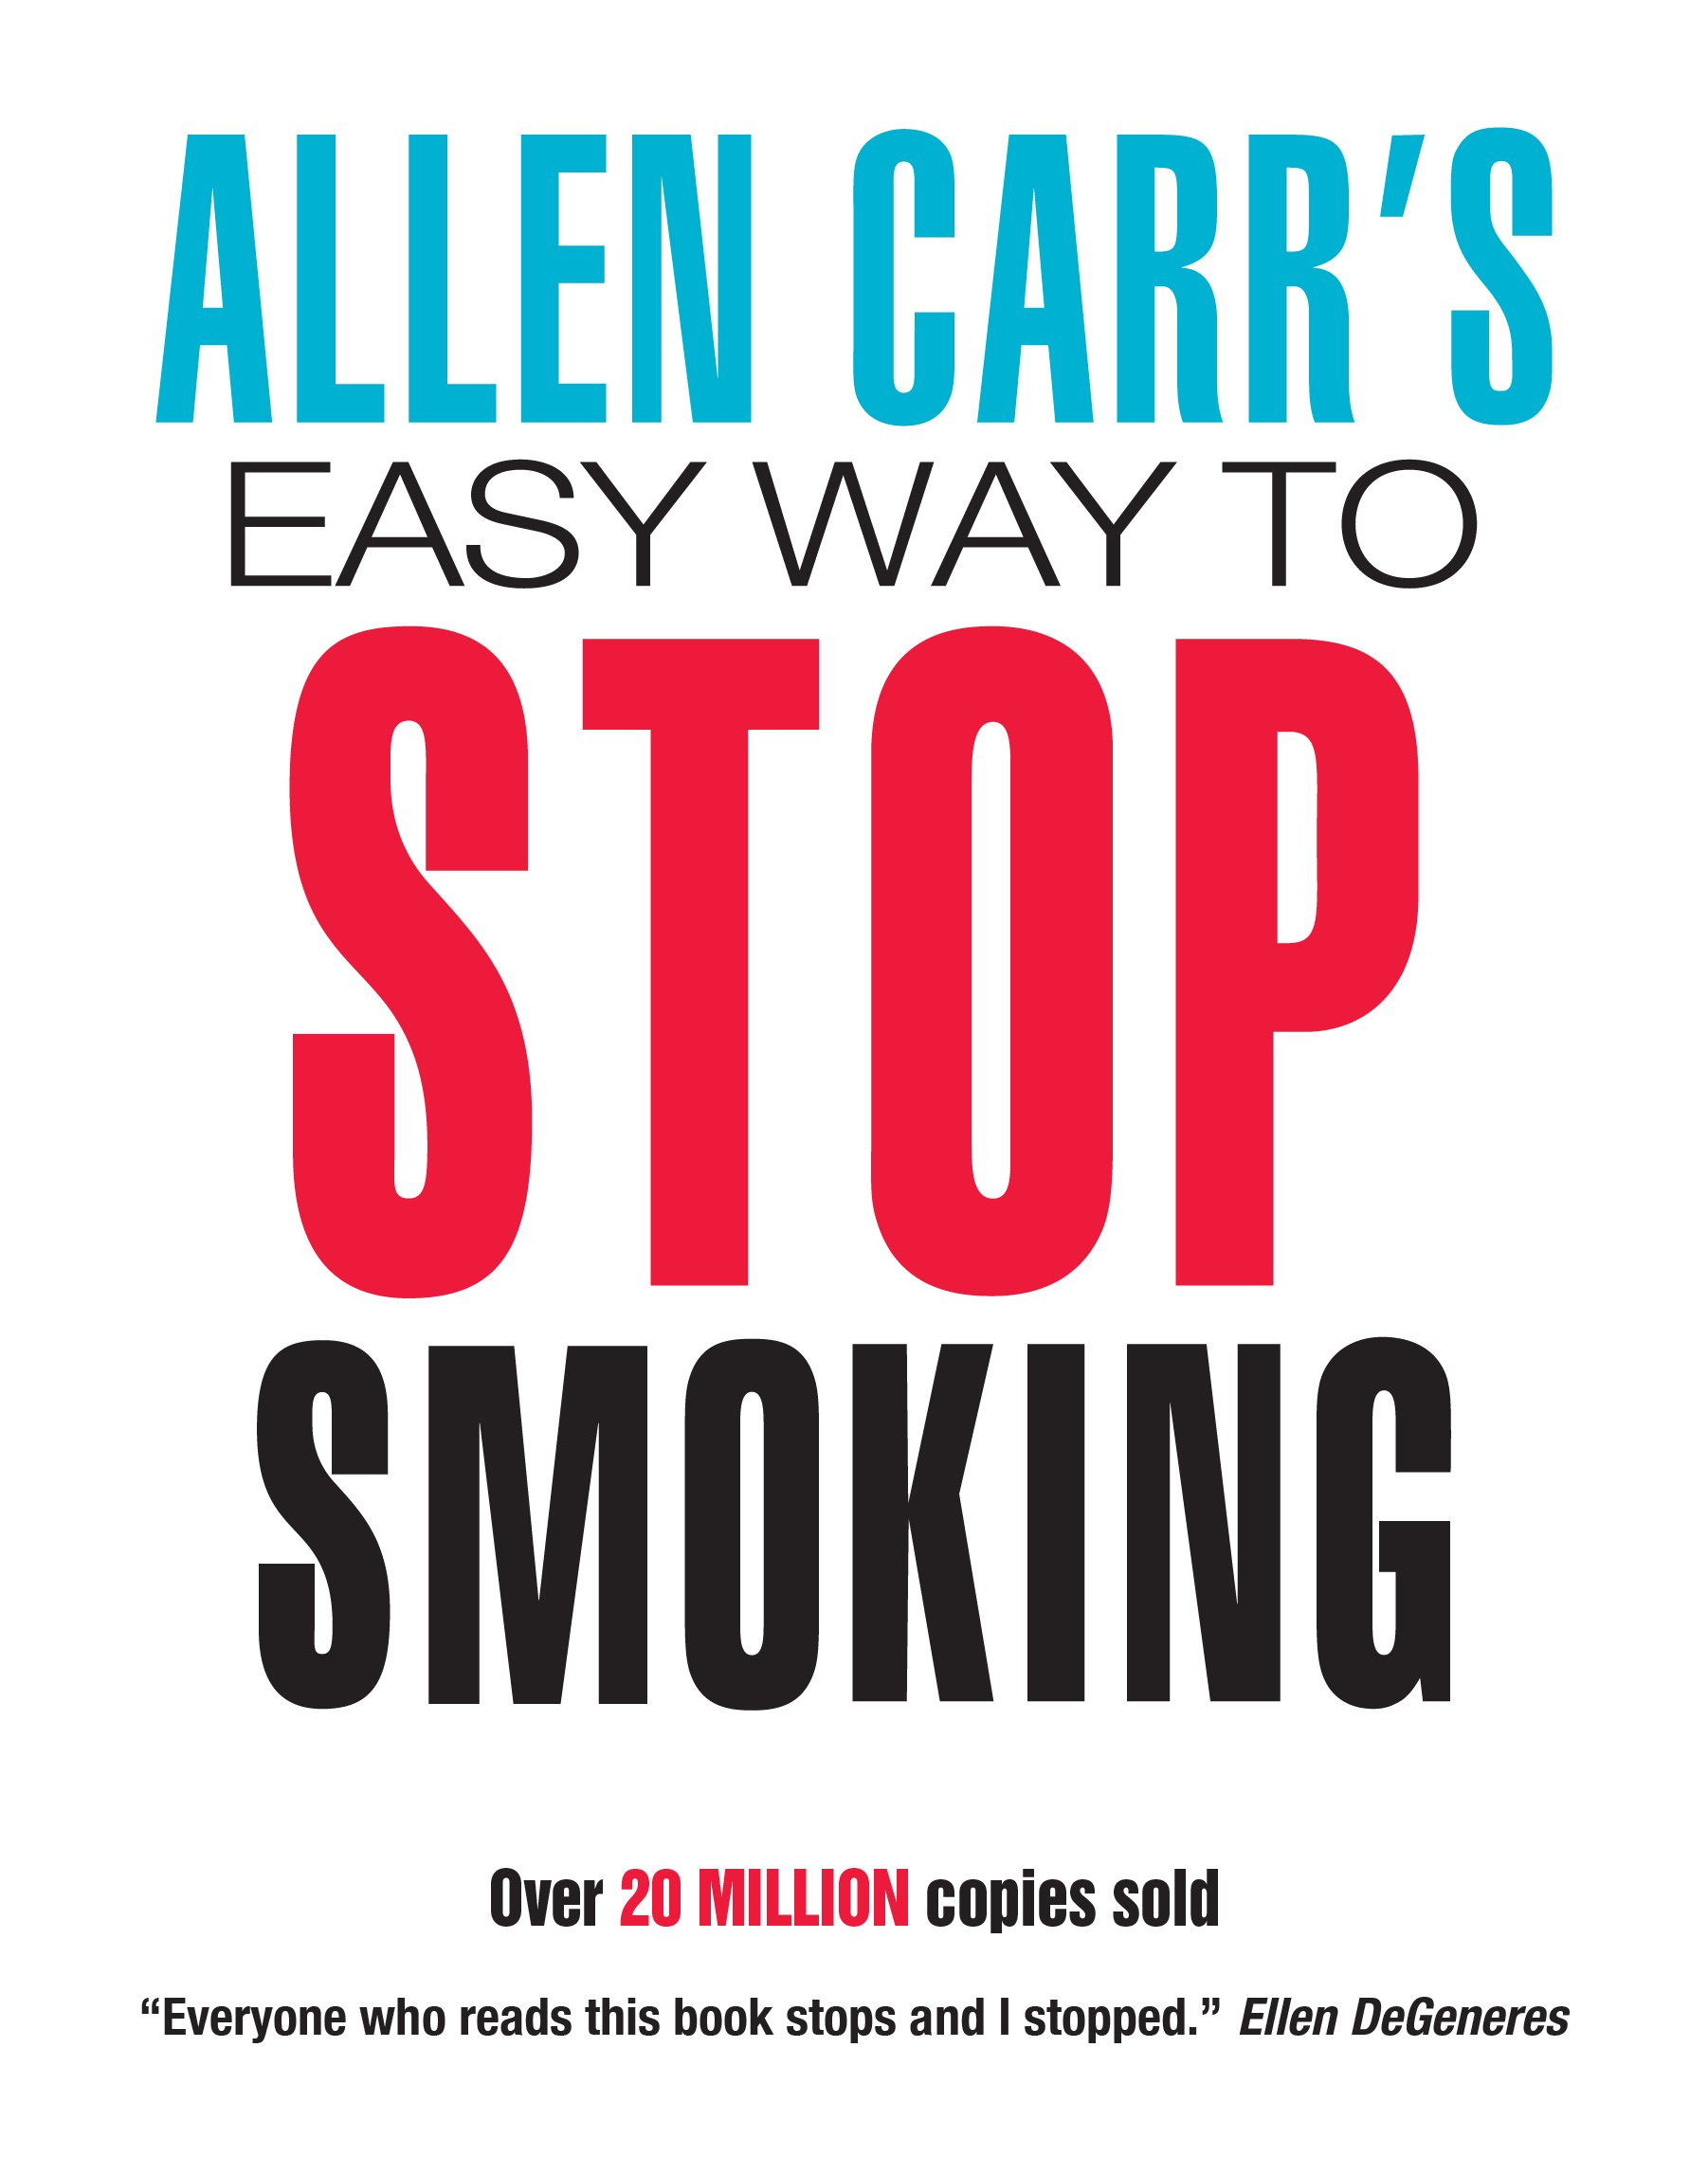 Allen Carrs Easy Stop Smoking product image